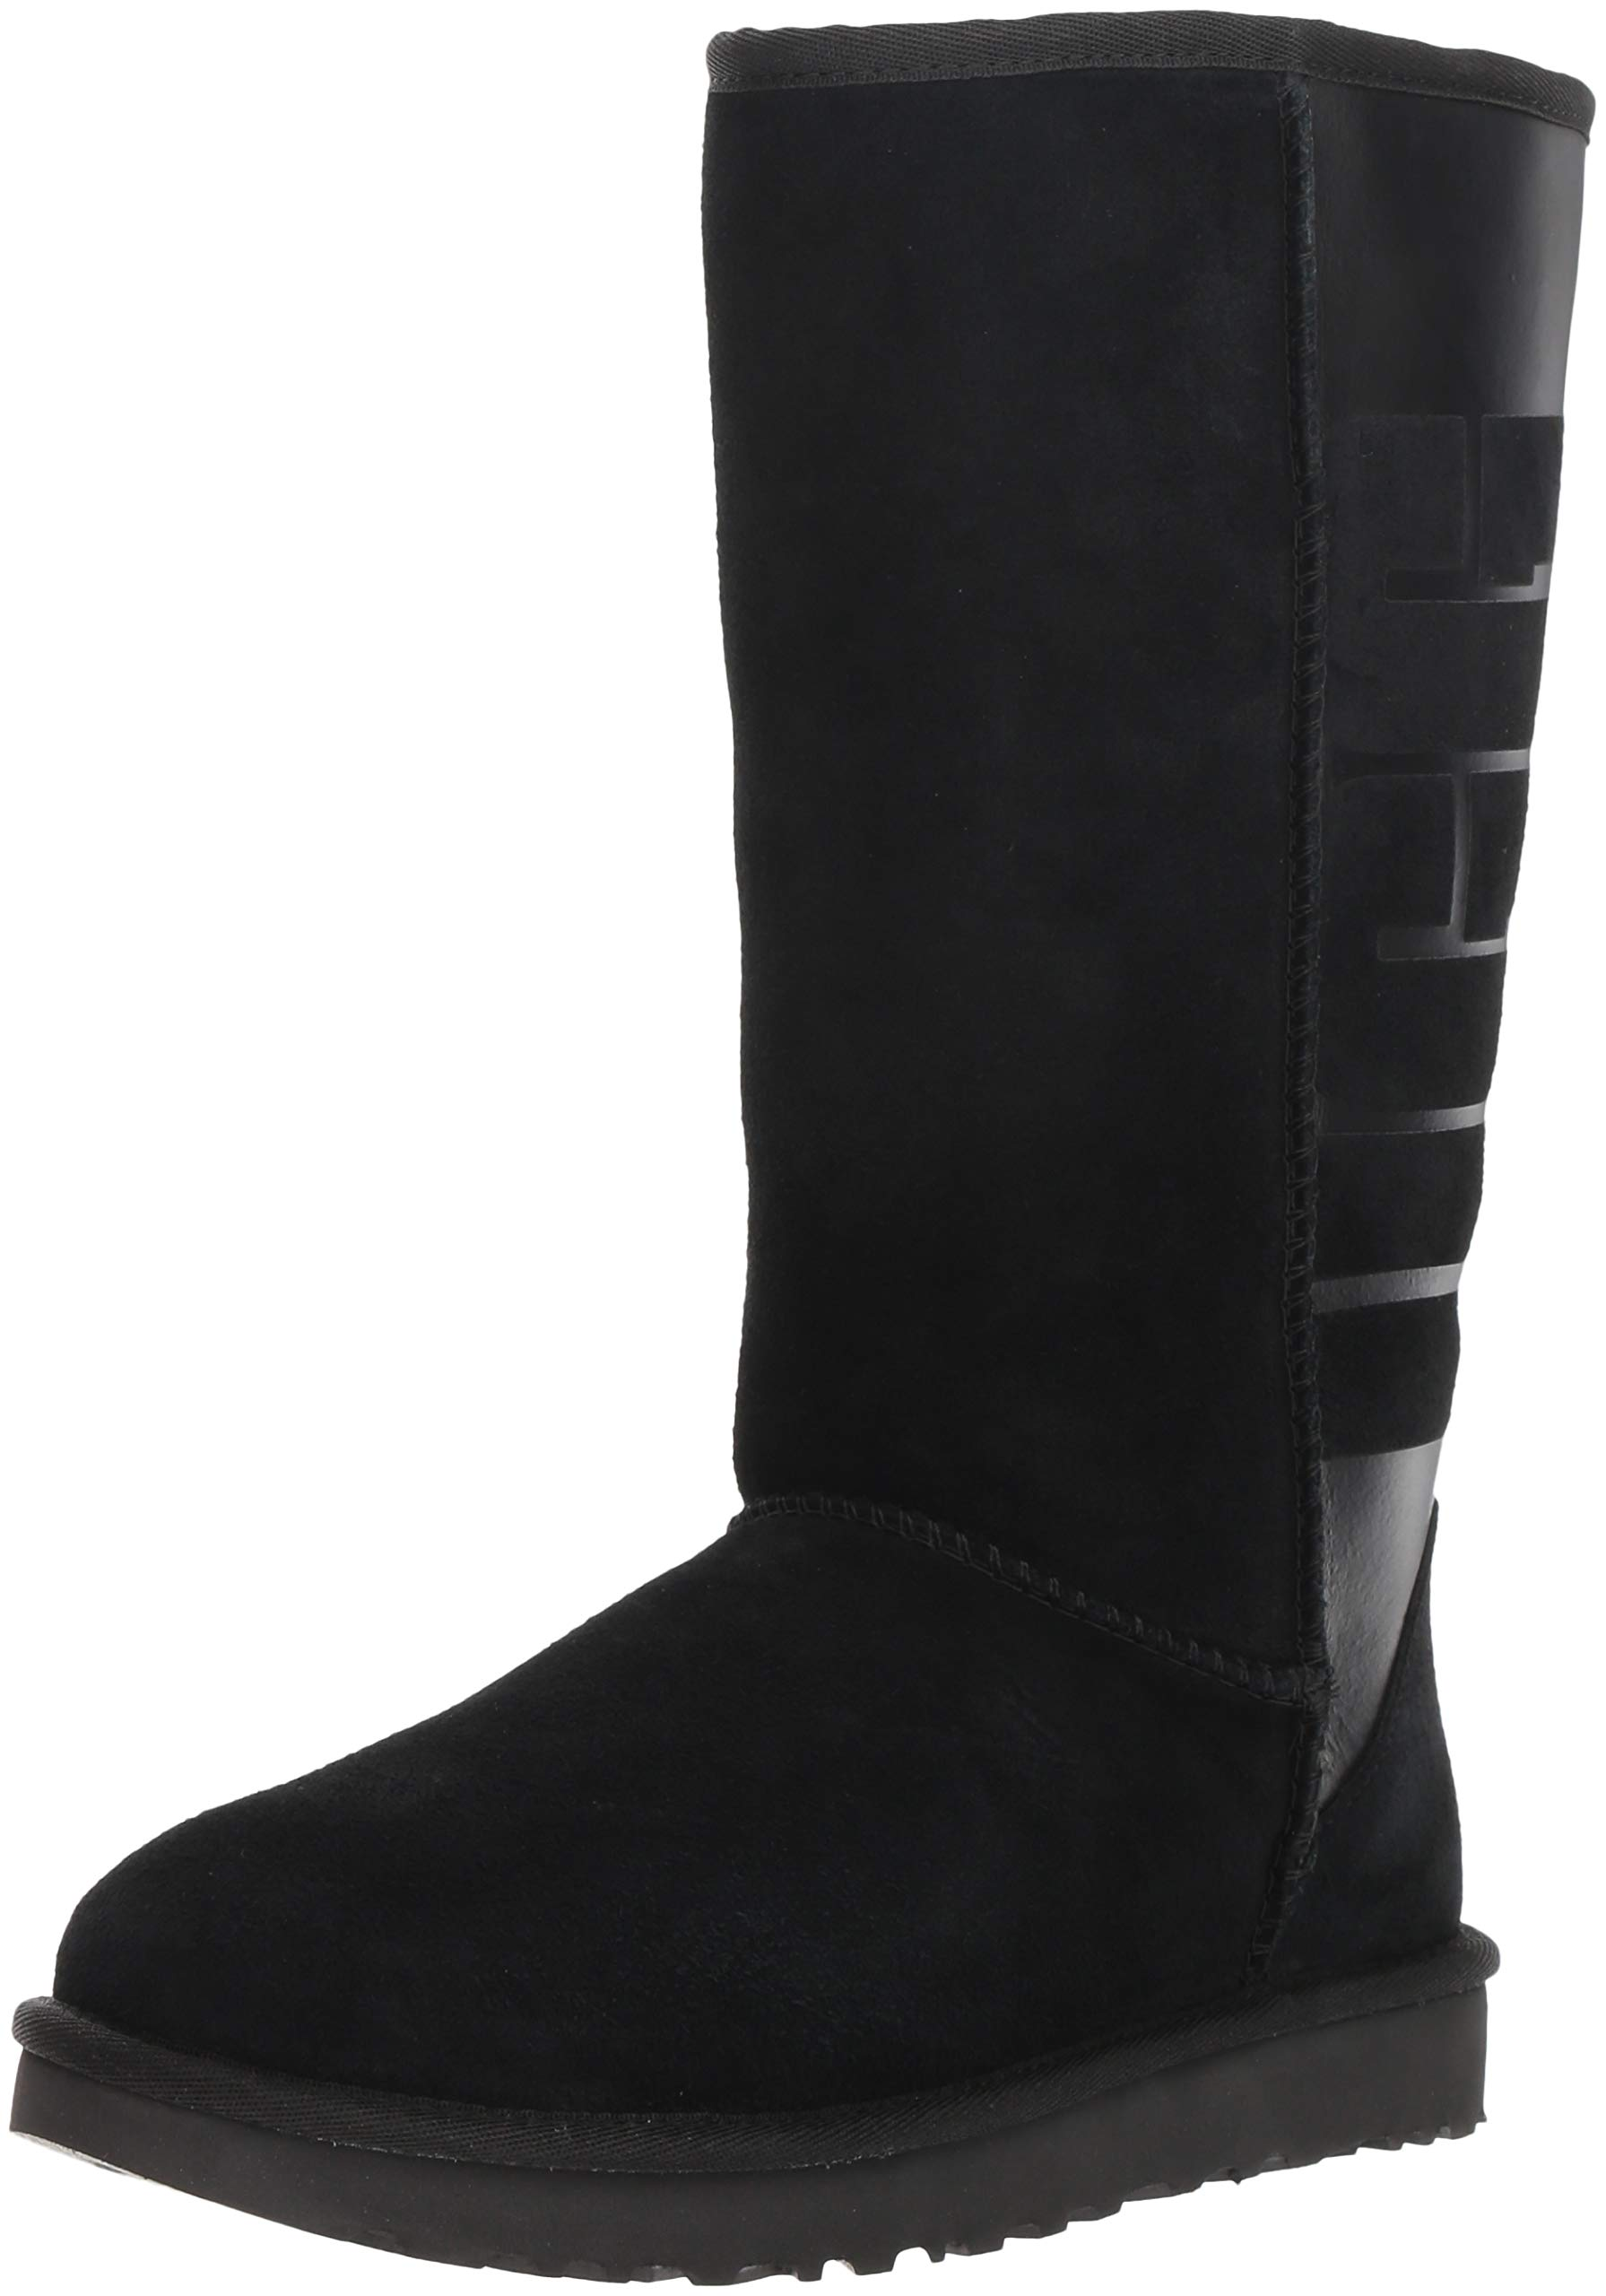 UGG Women's W CLASSIC TALL RUBBER Fashion Boot, black, 9 M US by UGG